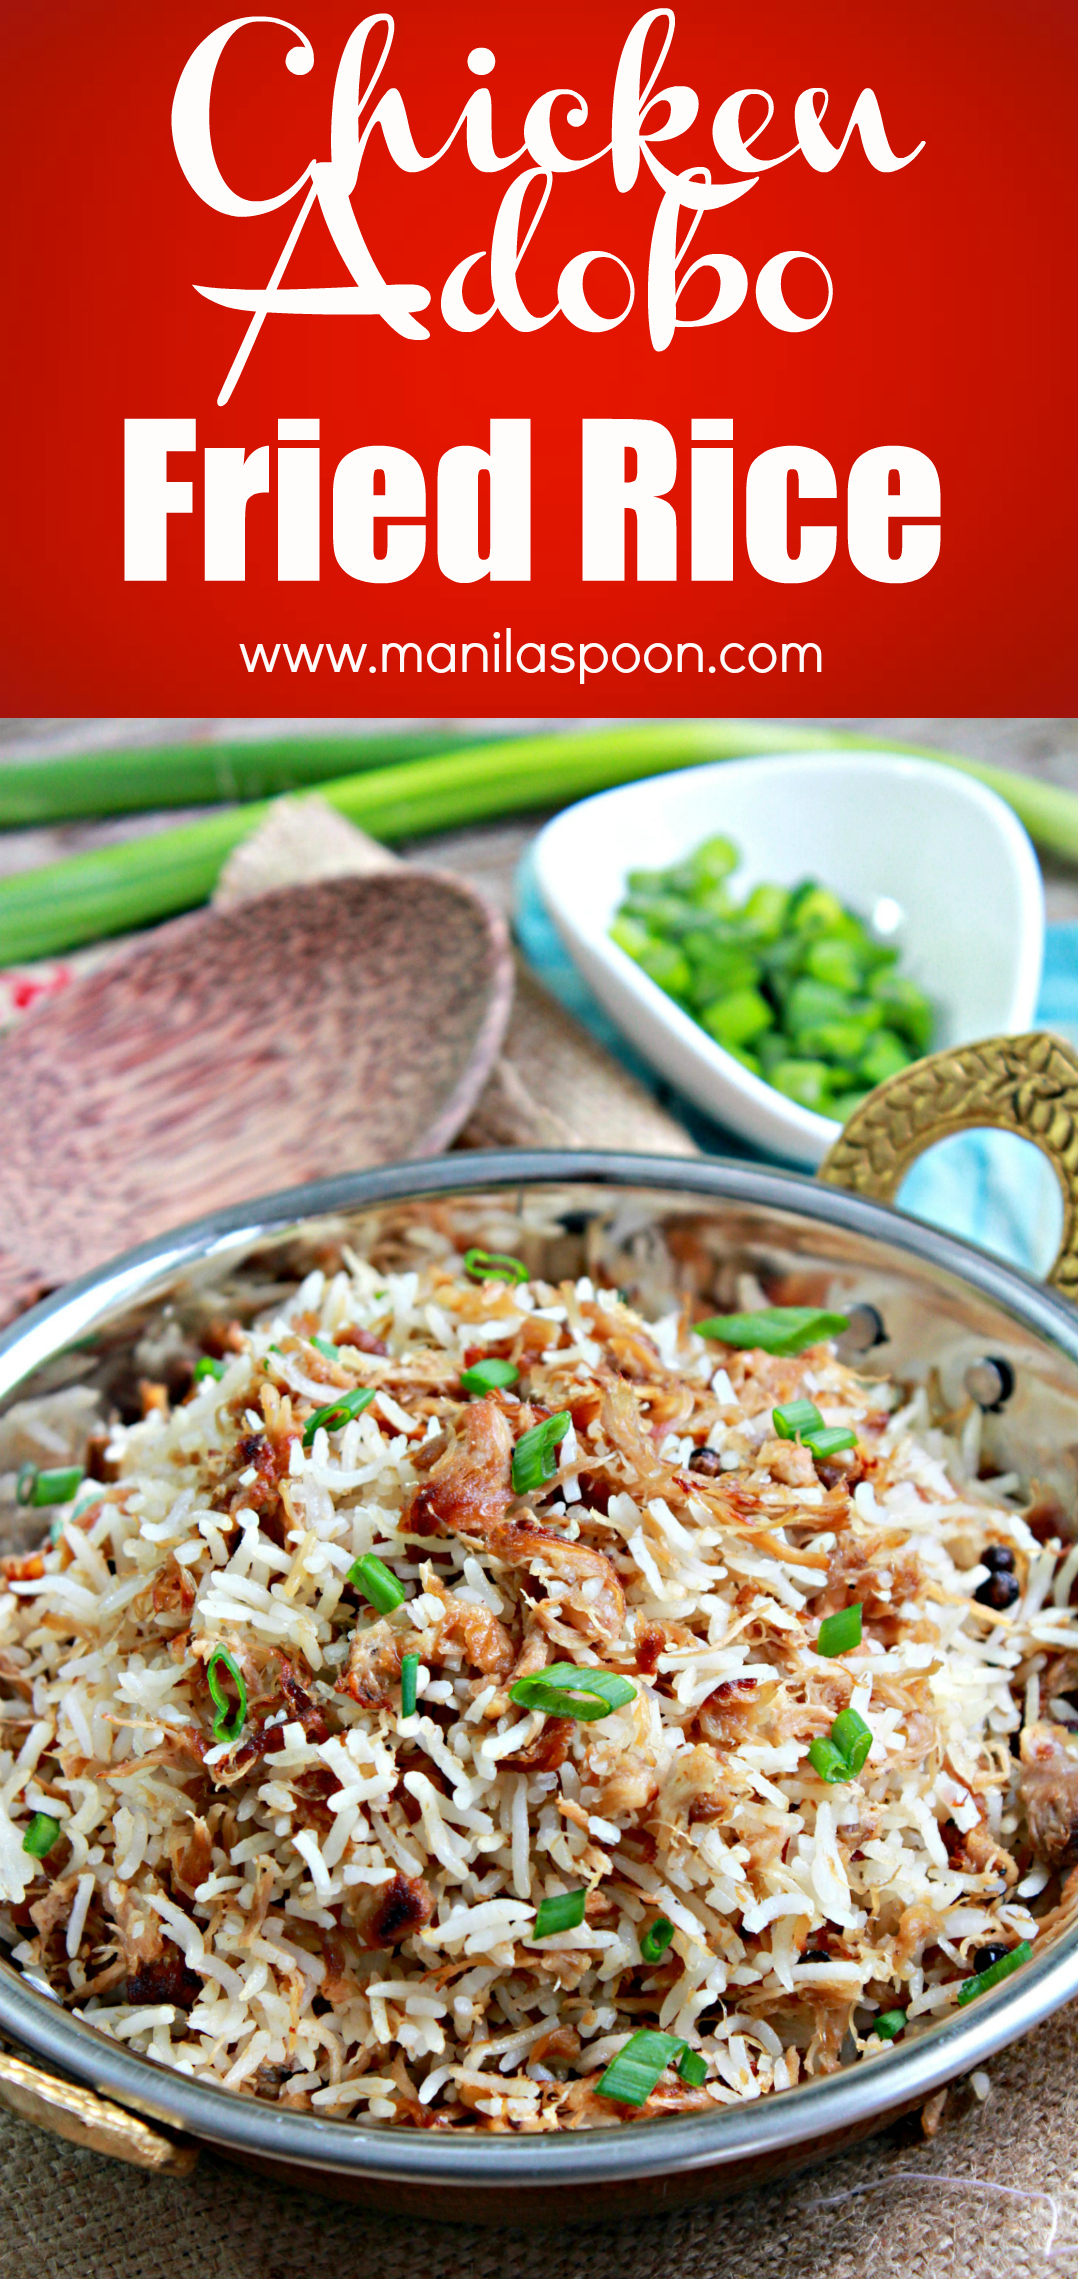 When you have left-over adobo, the best thing to do is to make a meal out of it by making Chicken Adobo Fried Rice. Perfect for Pork Adobo as well. Easy and super-tasty!!